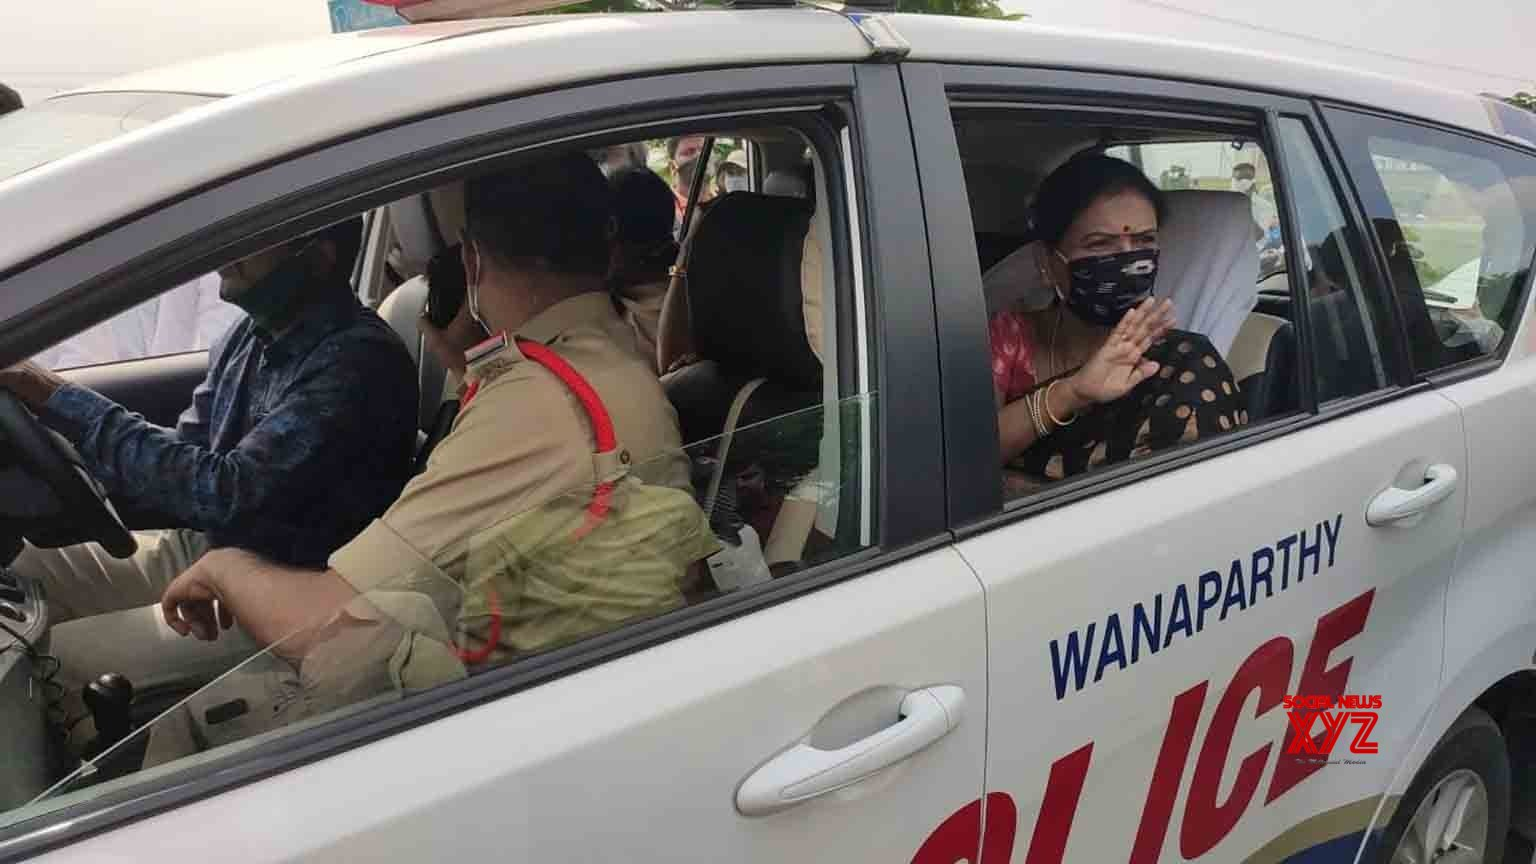 Nagarkurnool: BJP national secretary DK Aruna arrested during inspection visit to Telangana's Eluru #Gallery